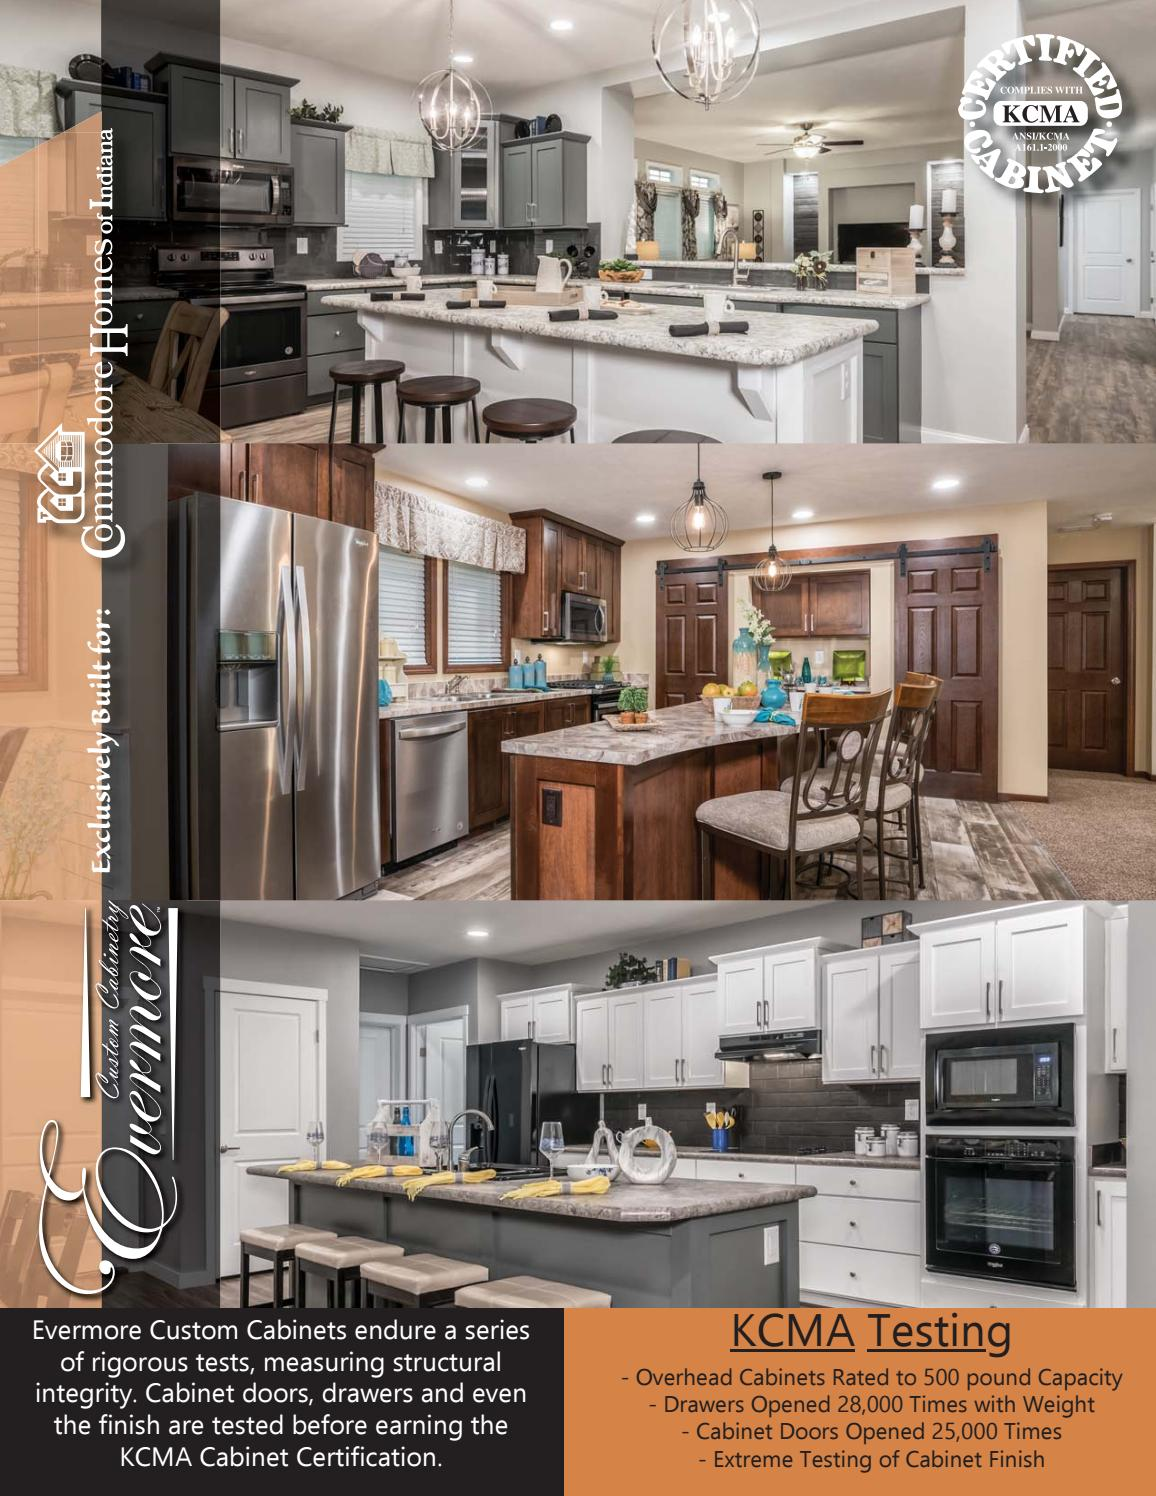 Commodore Homes Of Indiana Kcma Cabinetry Selections 2018